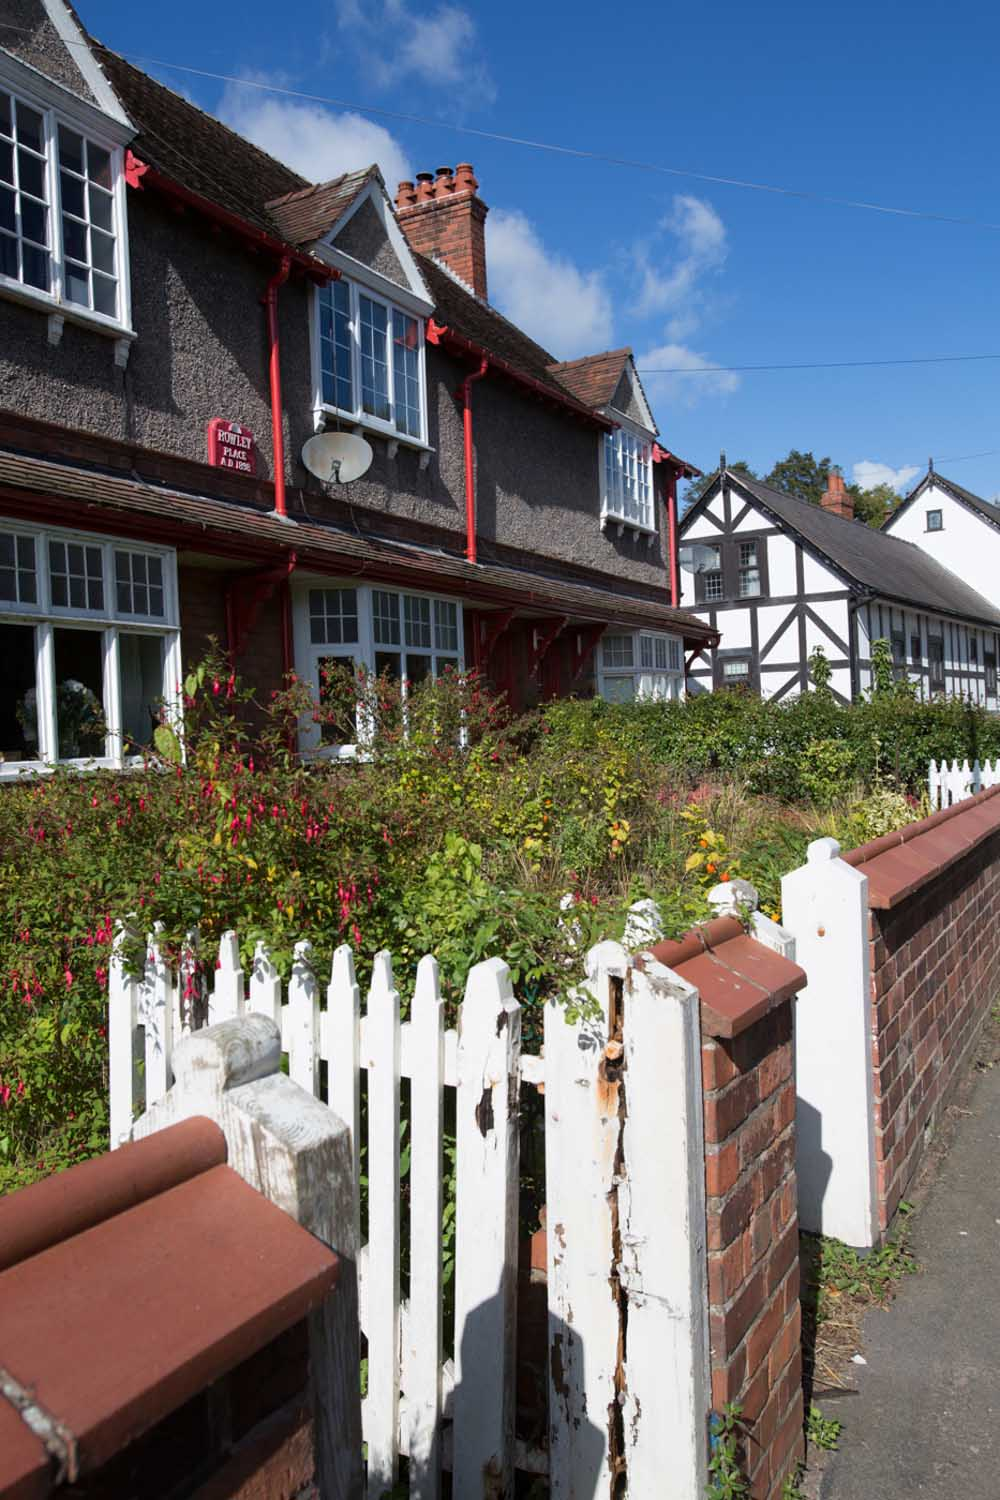 Village of Churton, Cheshire, England. Picturesque view of Victorian terraced houses on Churton's Chester Road.